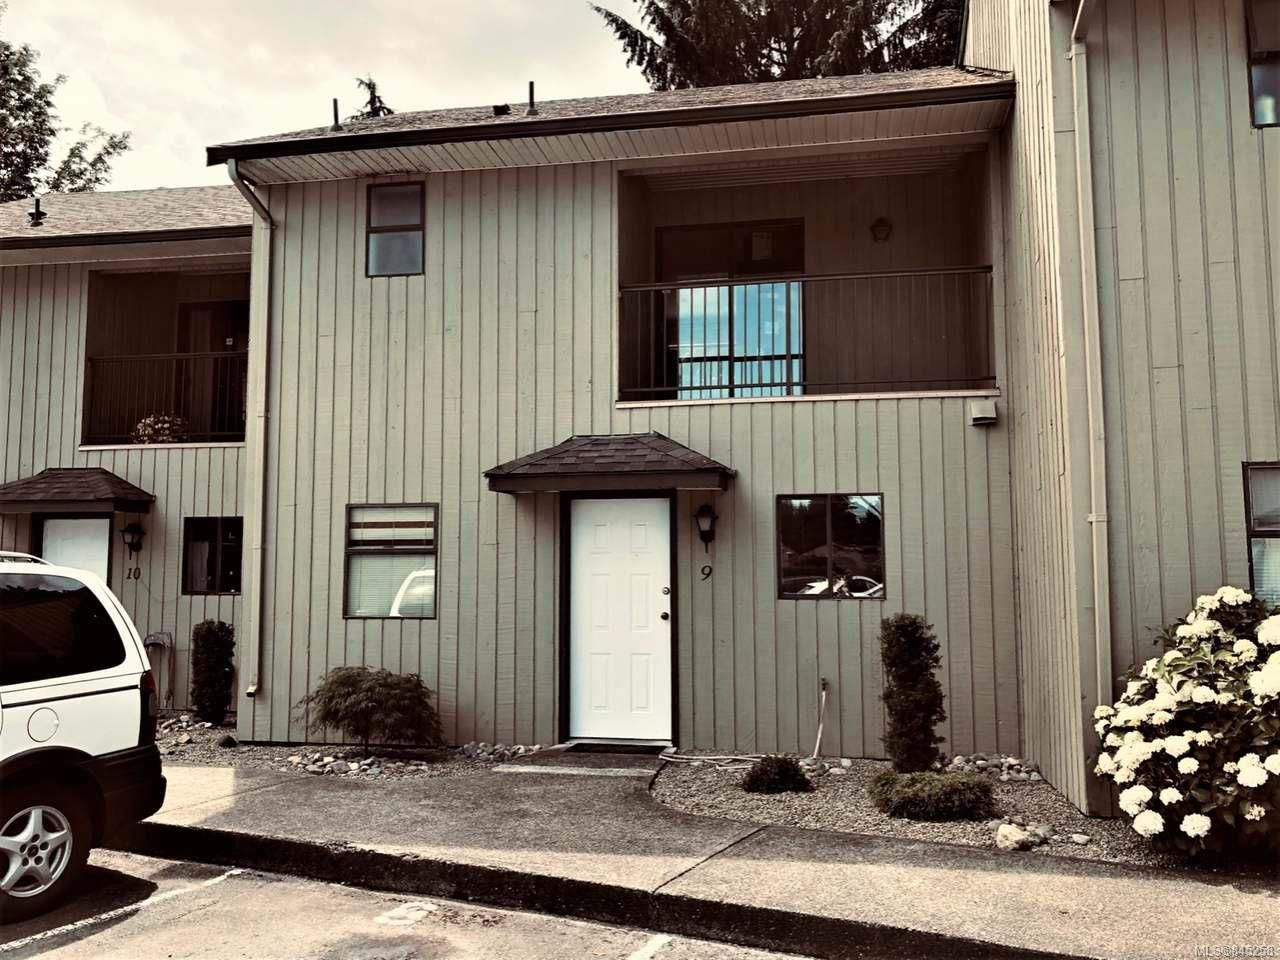 Main Photo: 9 3350 W Island Hwy in QUALICUM BEACH: PQ Qualicum Beach Row/Townhouse for sale (Parksville/Qualicum)  : MLS®# 845258